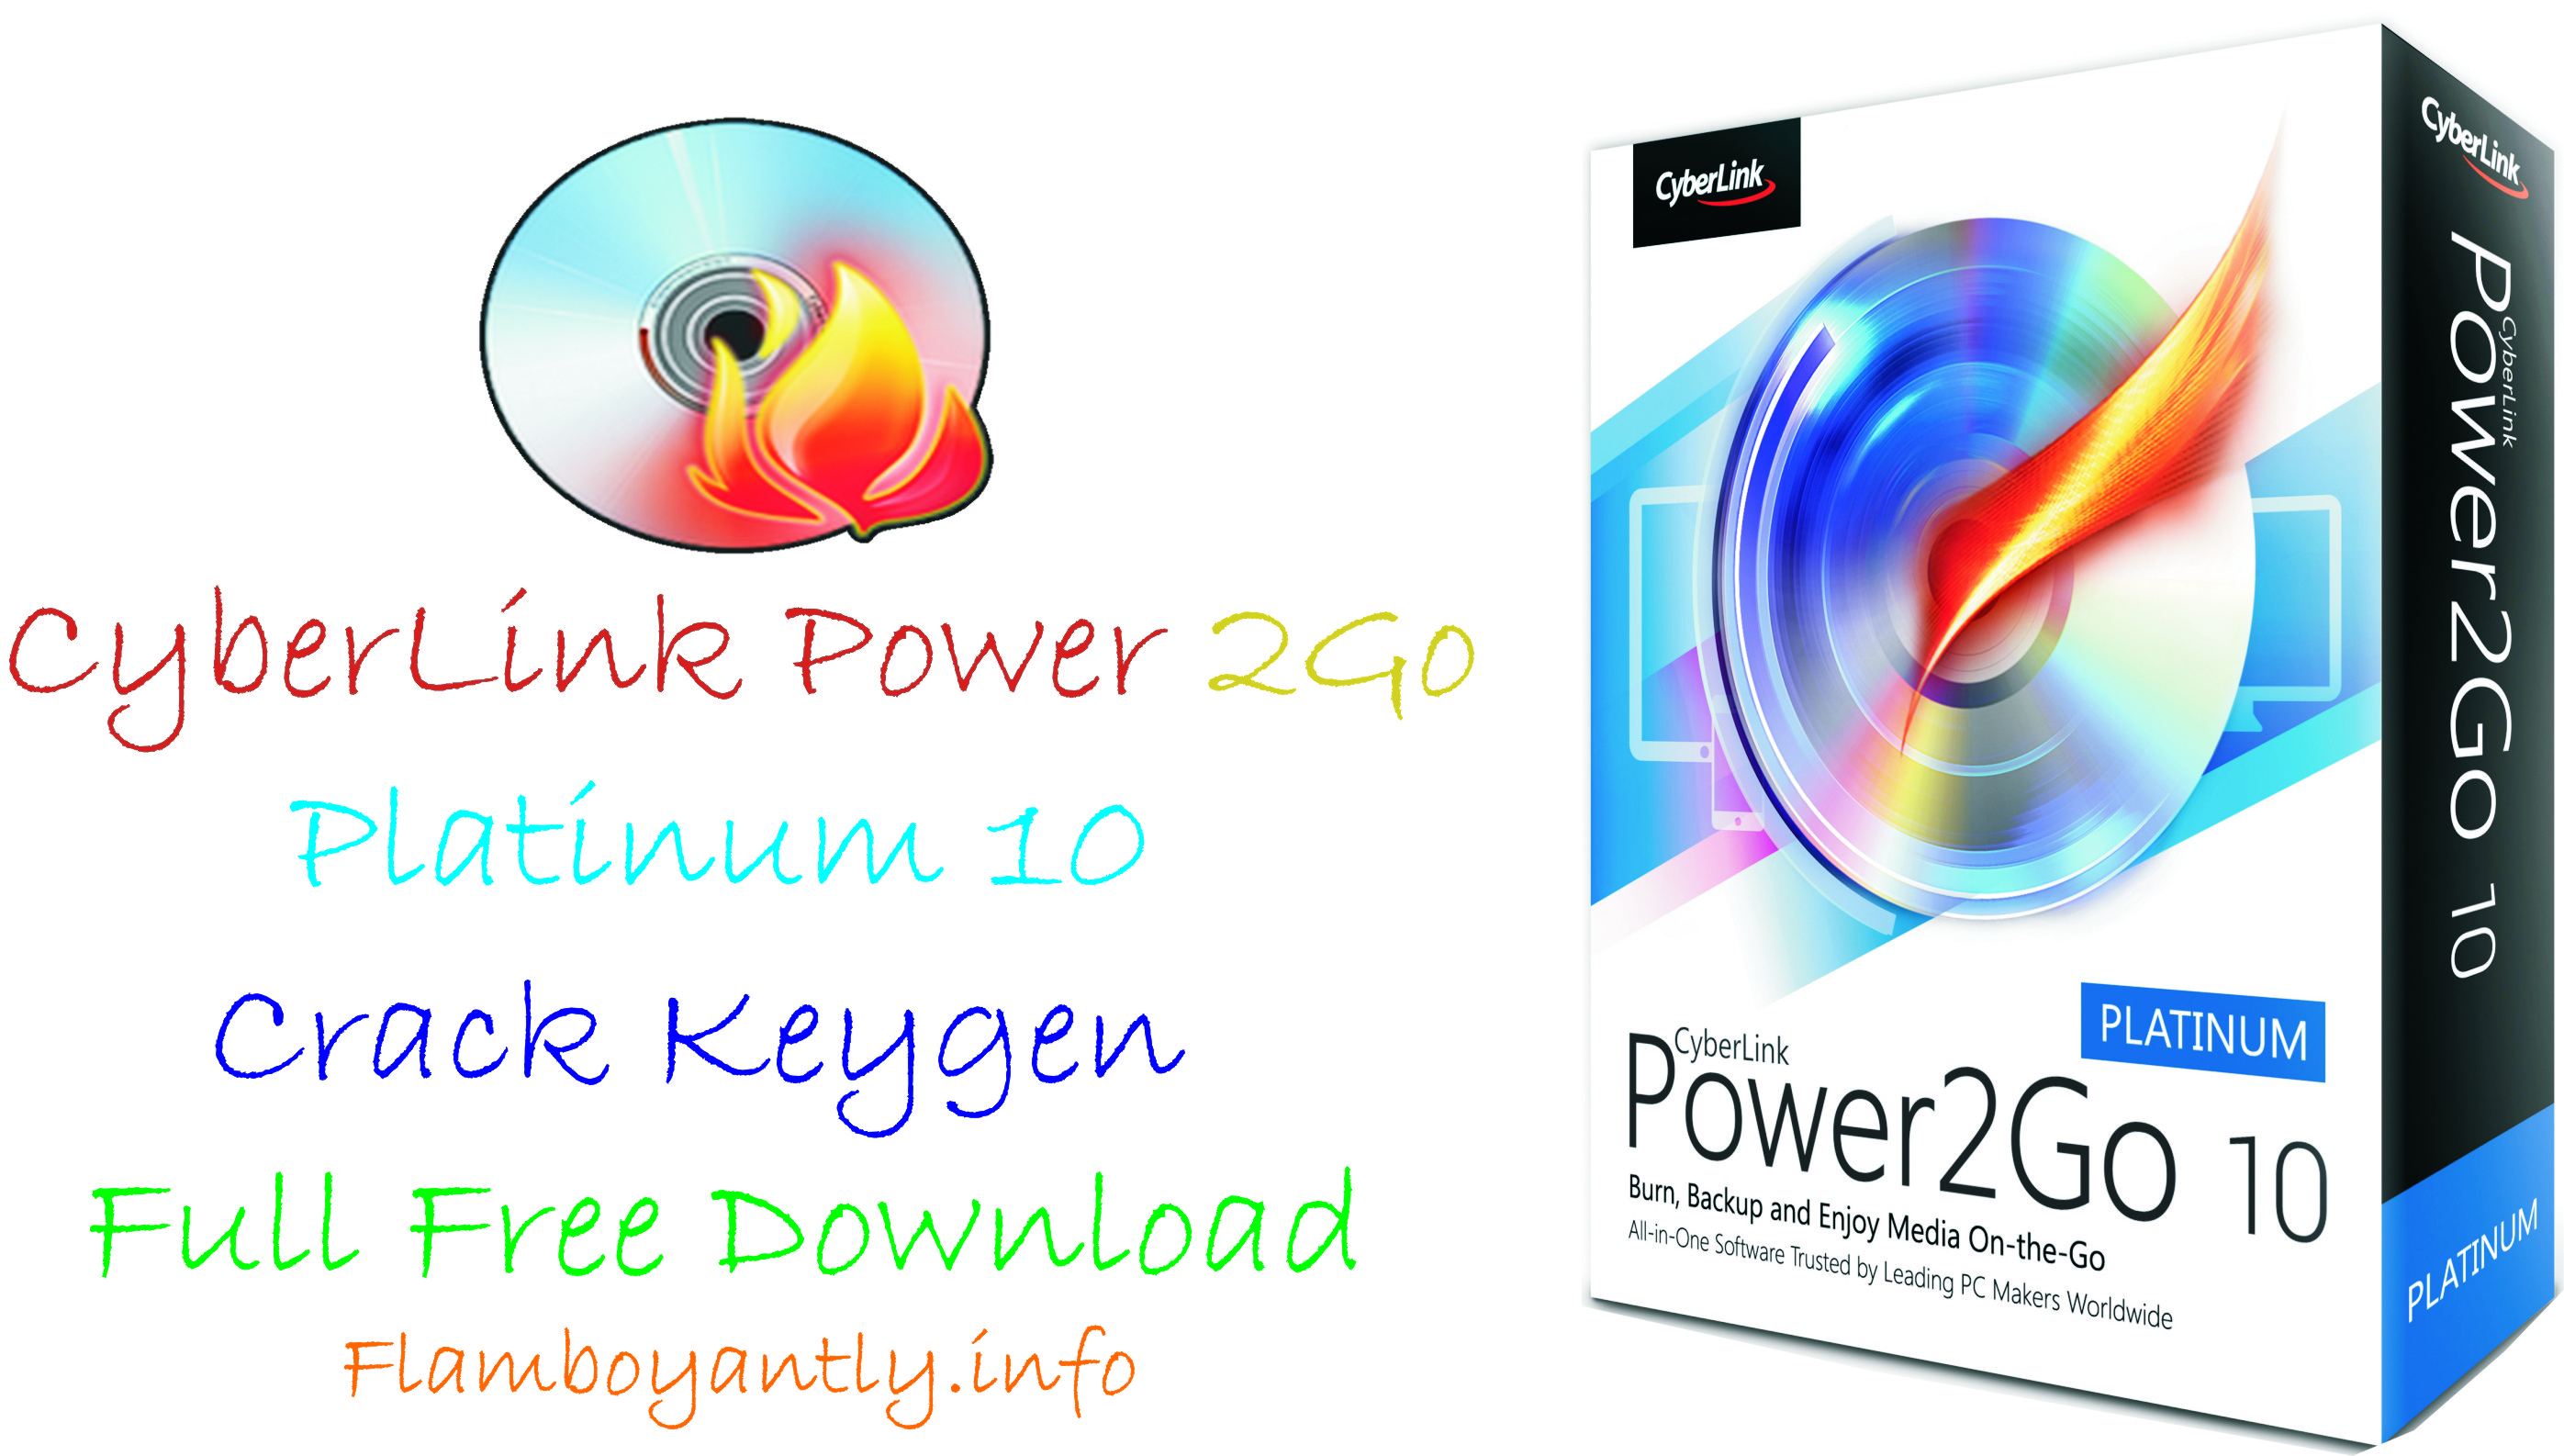 Cyberlink power2go v7 0 cracked bwdt